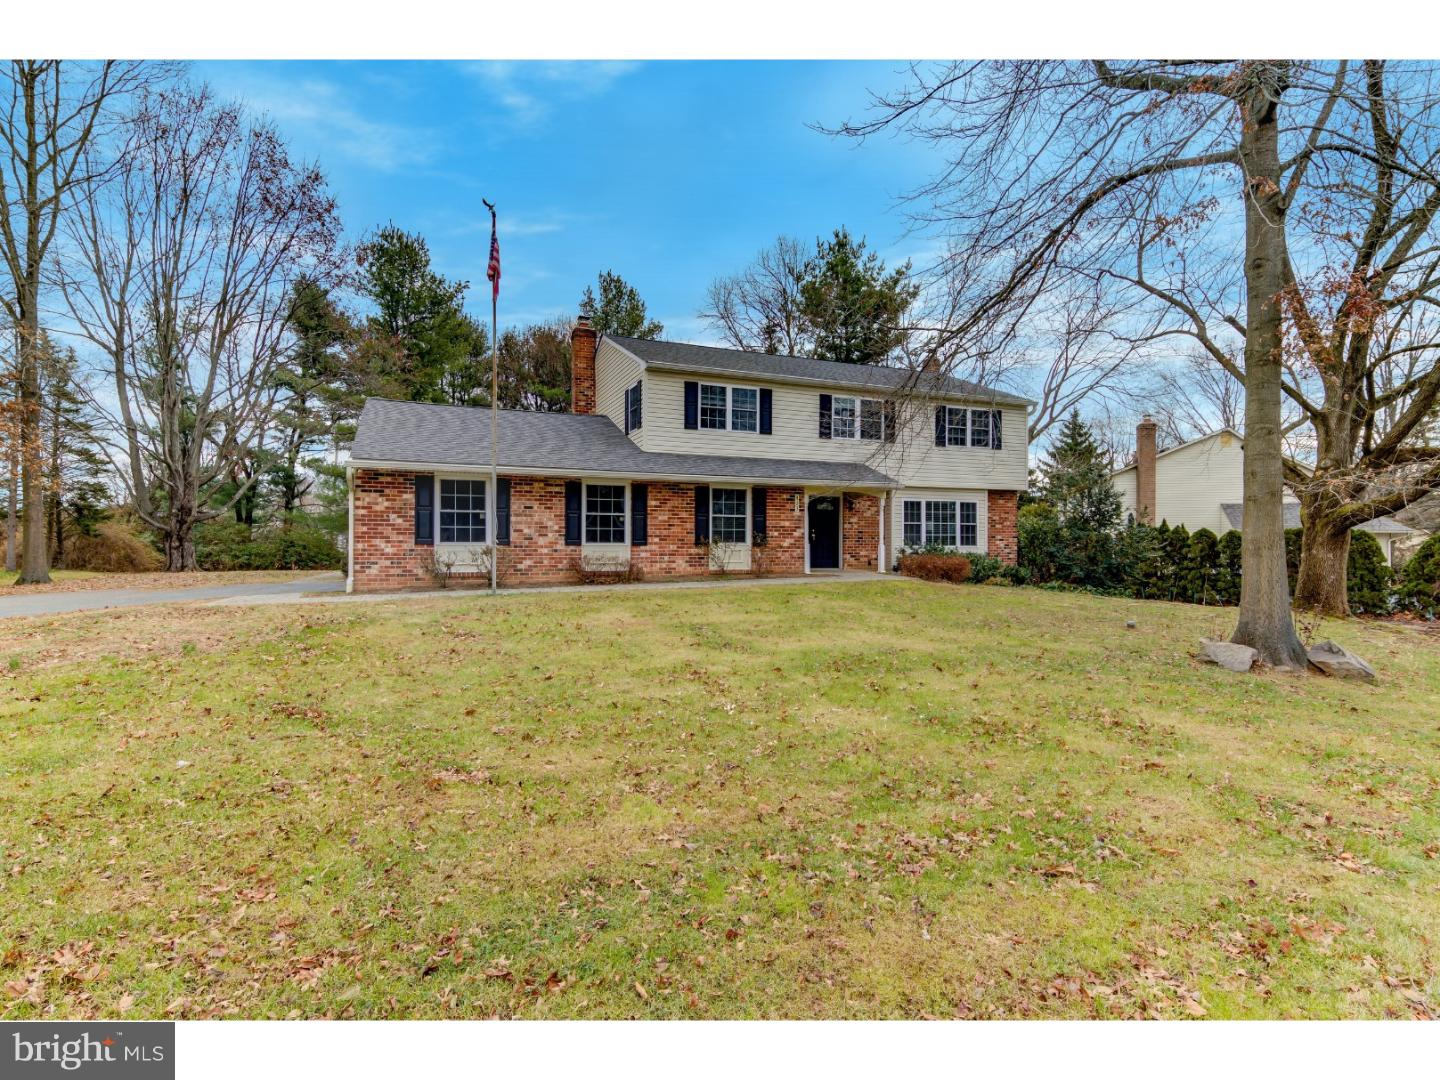 423 Gateswood Drive West Chester , PA 19380